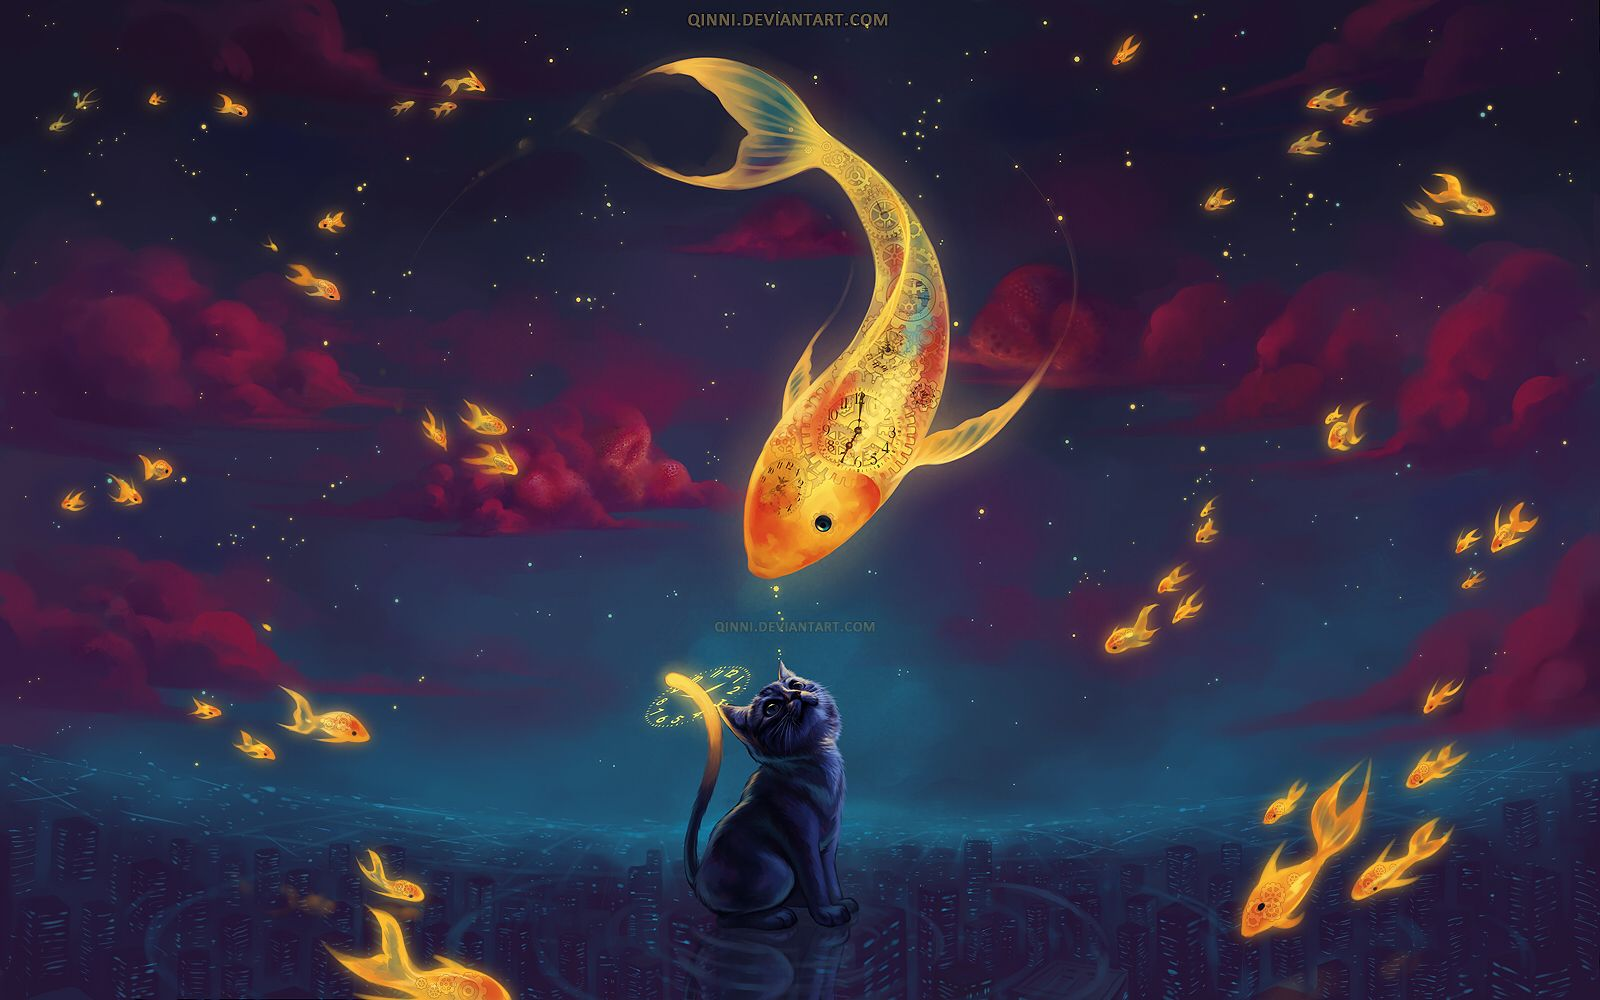 To Catch The Moonfish by Qinni | Cat art, Art, Cross paintings